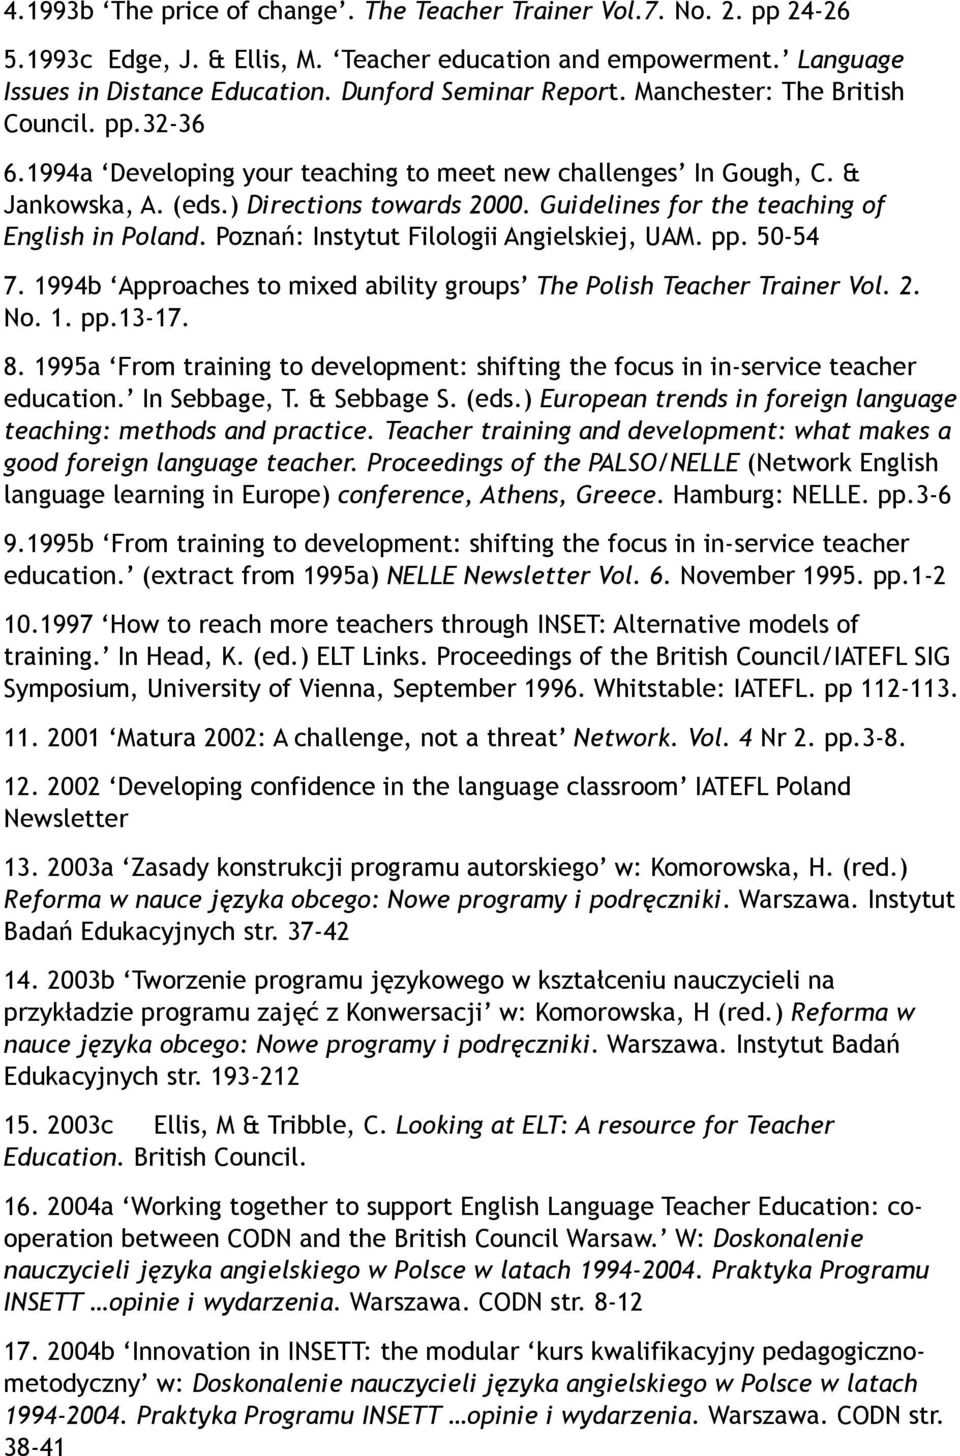 Guidelines for the teaching of English in Poland. Poznań: Instytut Filologii Angielskiej, UAM. pp. 50-54 7. 1994b Approaches to mixed ability groups The Polish Teacher Trainer Vol. 2. No. 1. pp.13-17.